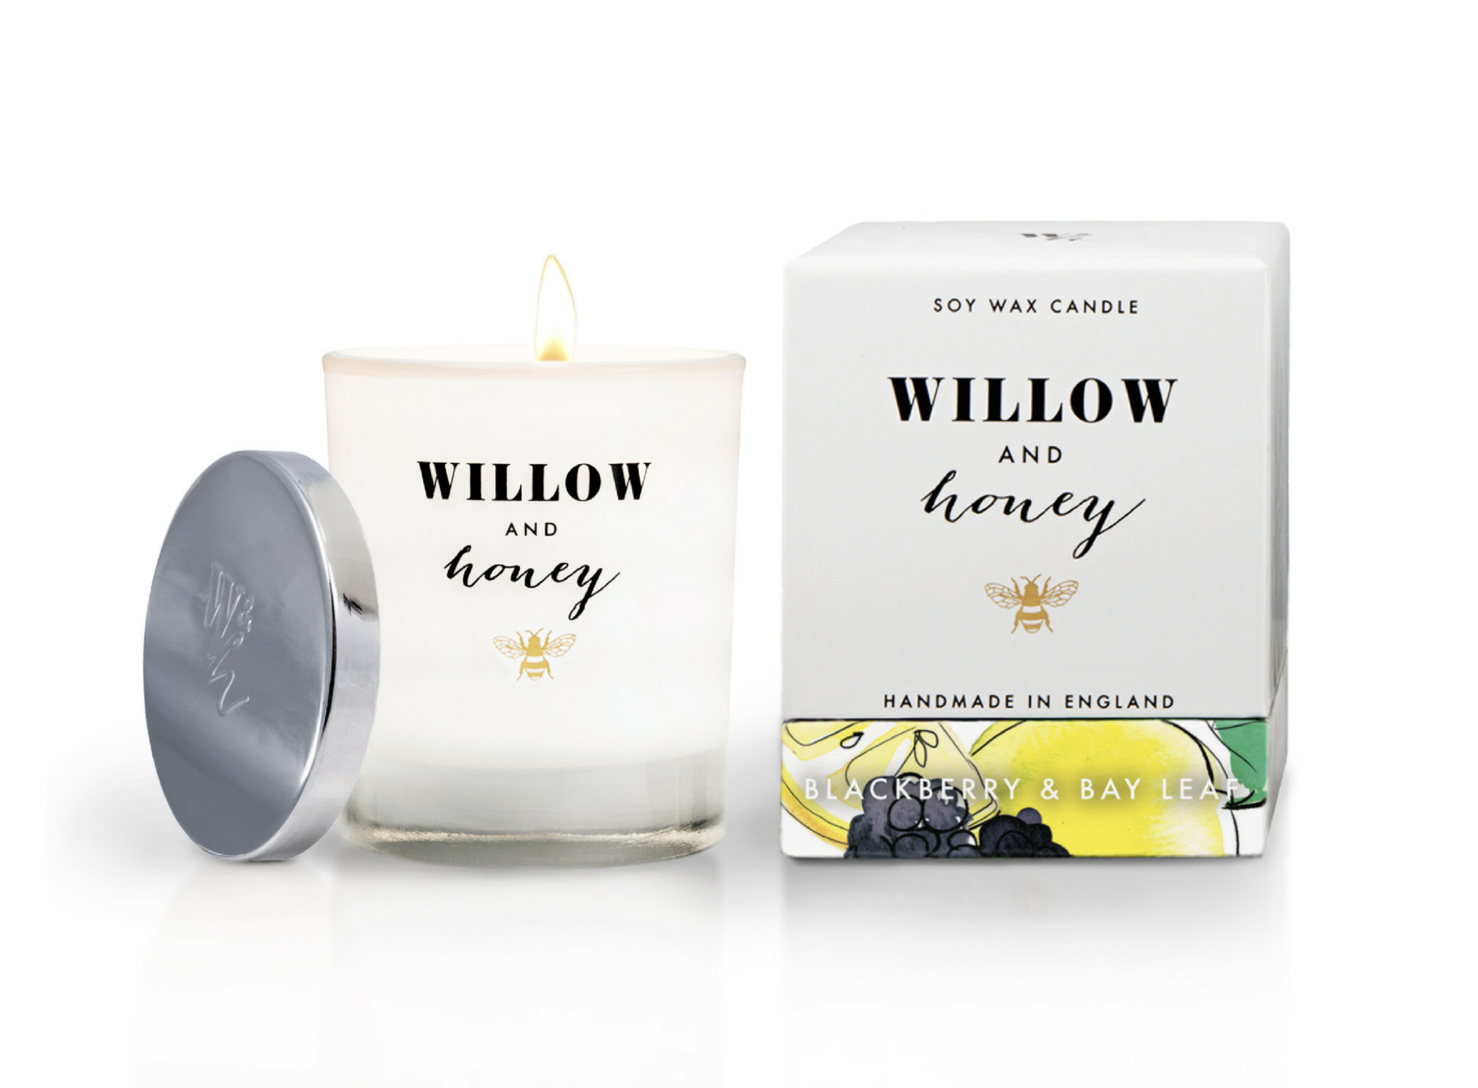 Willow & Honey scented candles, soy wax, £29.95